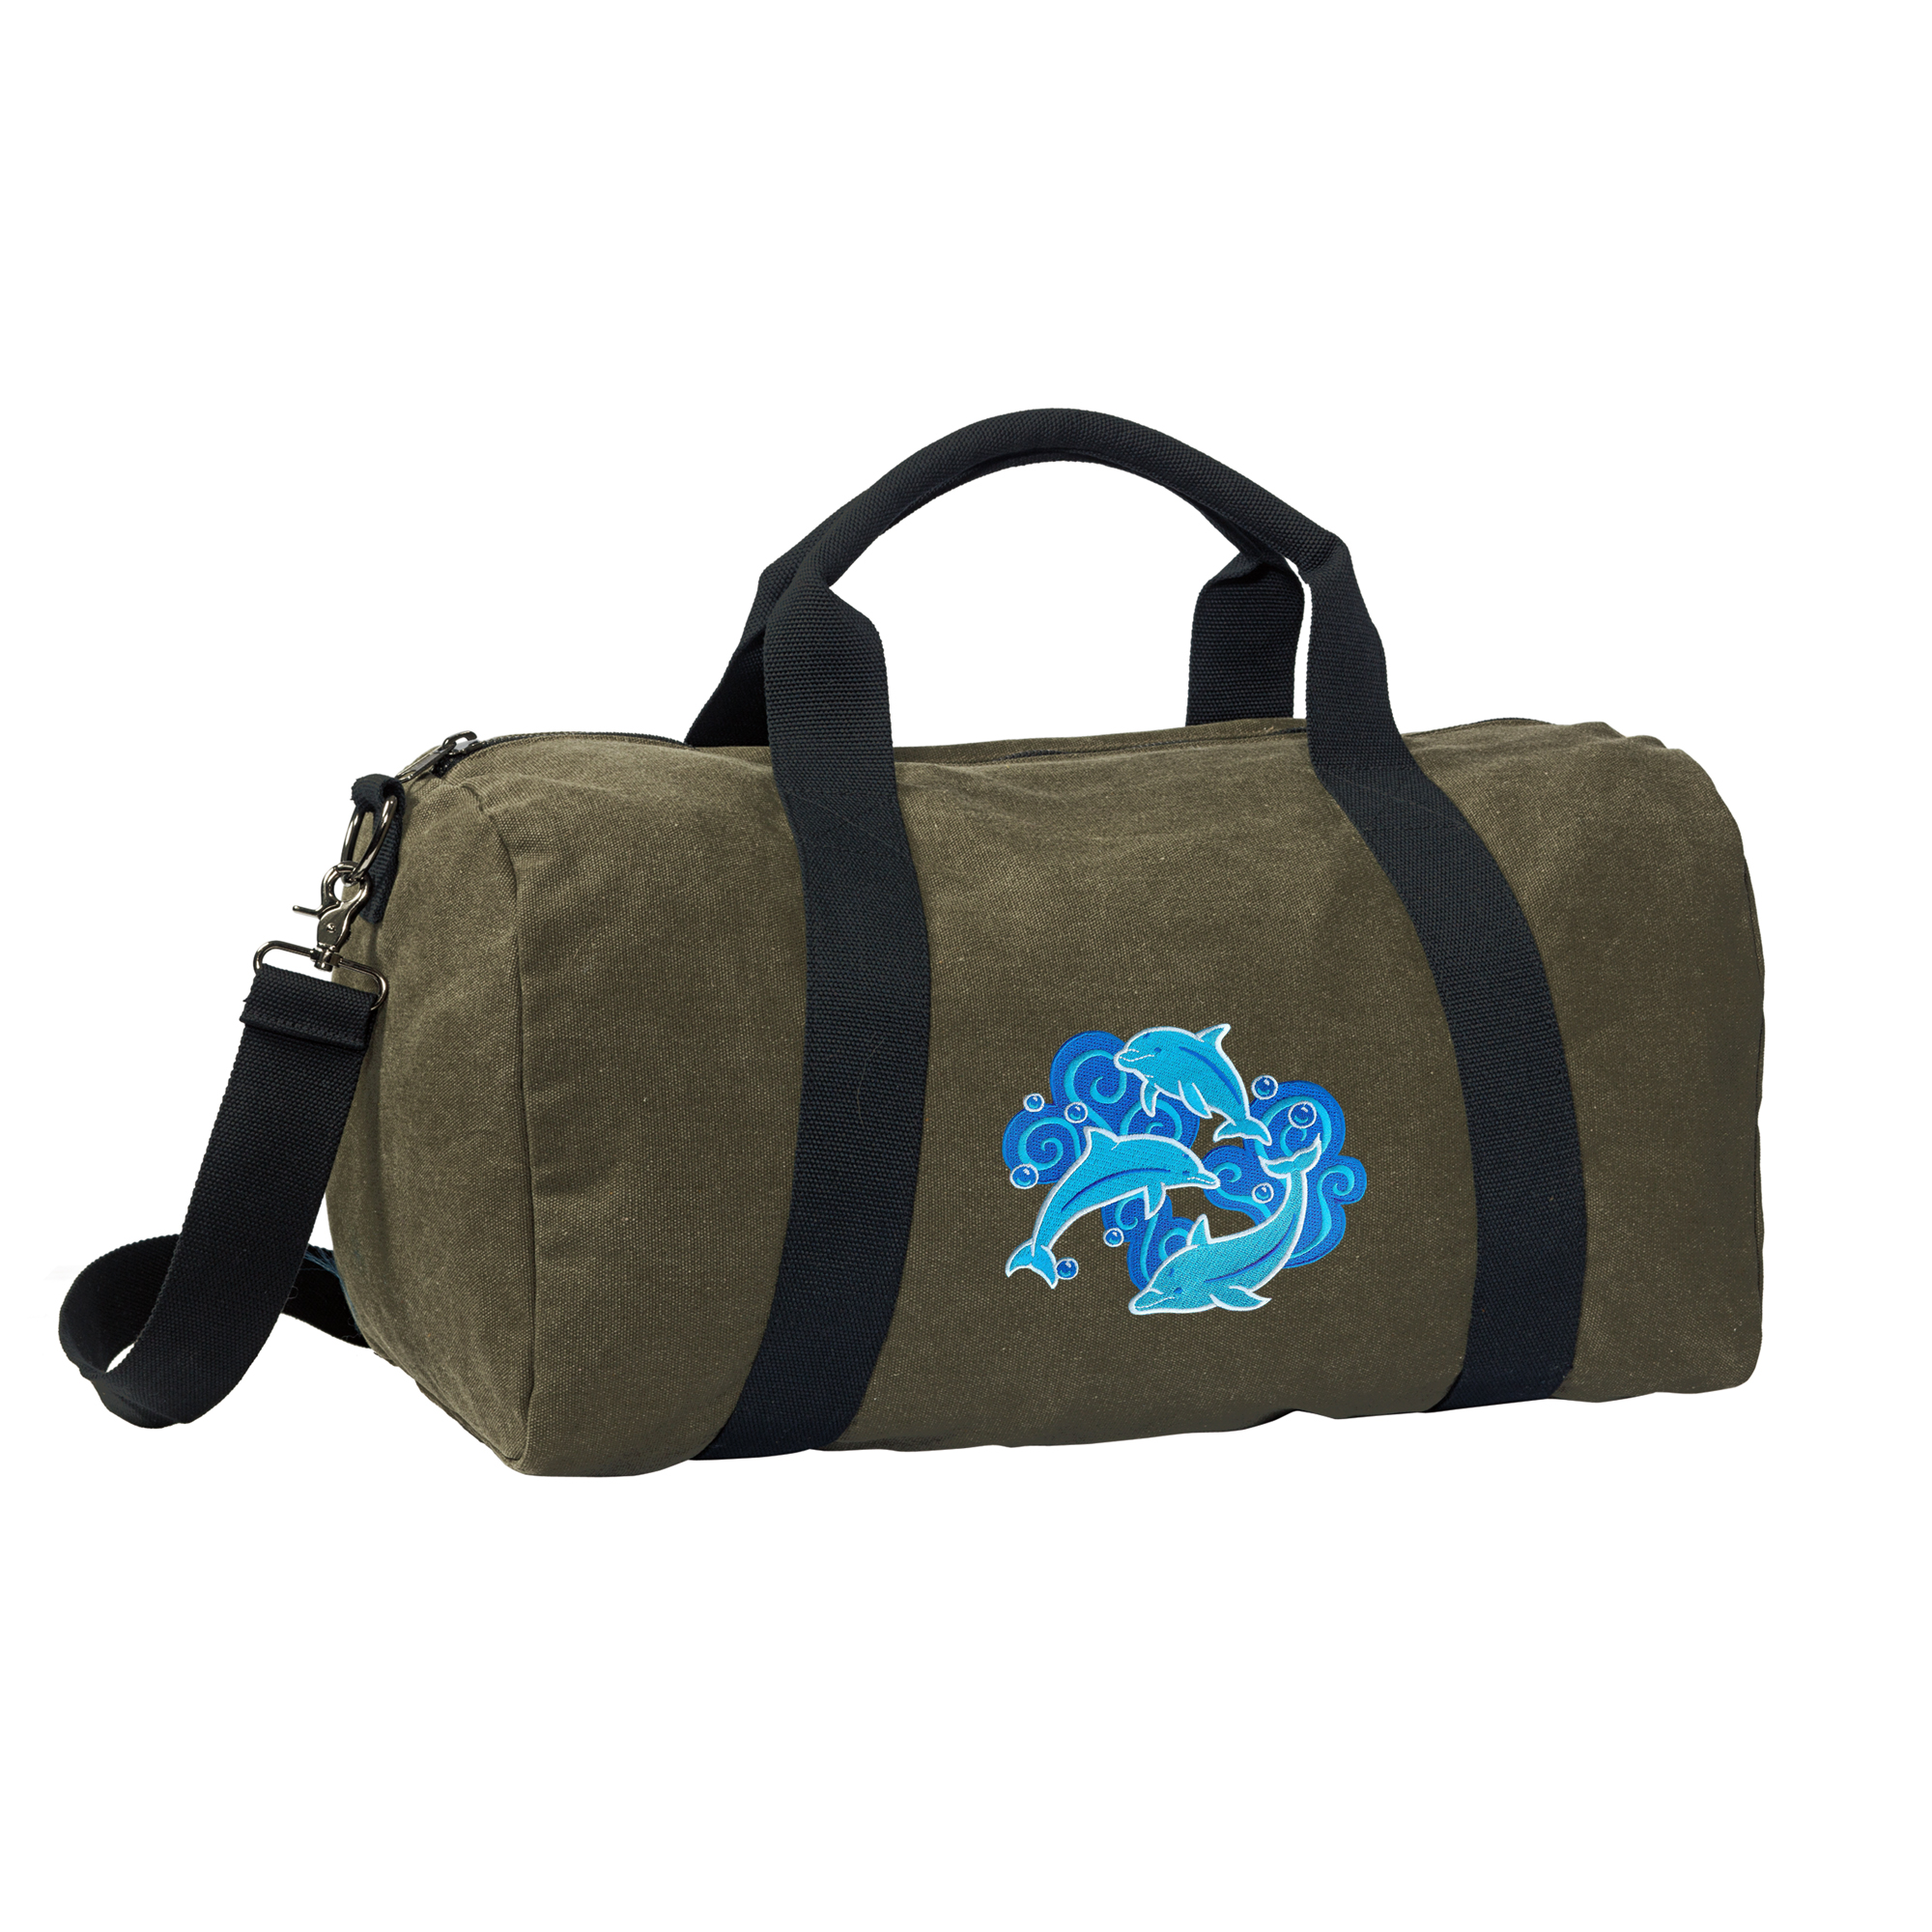 Dolphin Duffle Bag CANVAS Dolphin Luggage Bag by